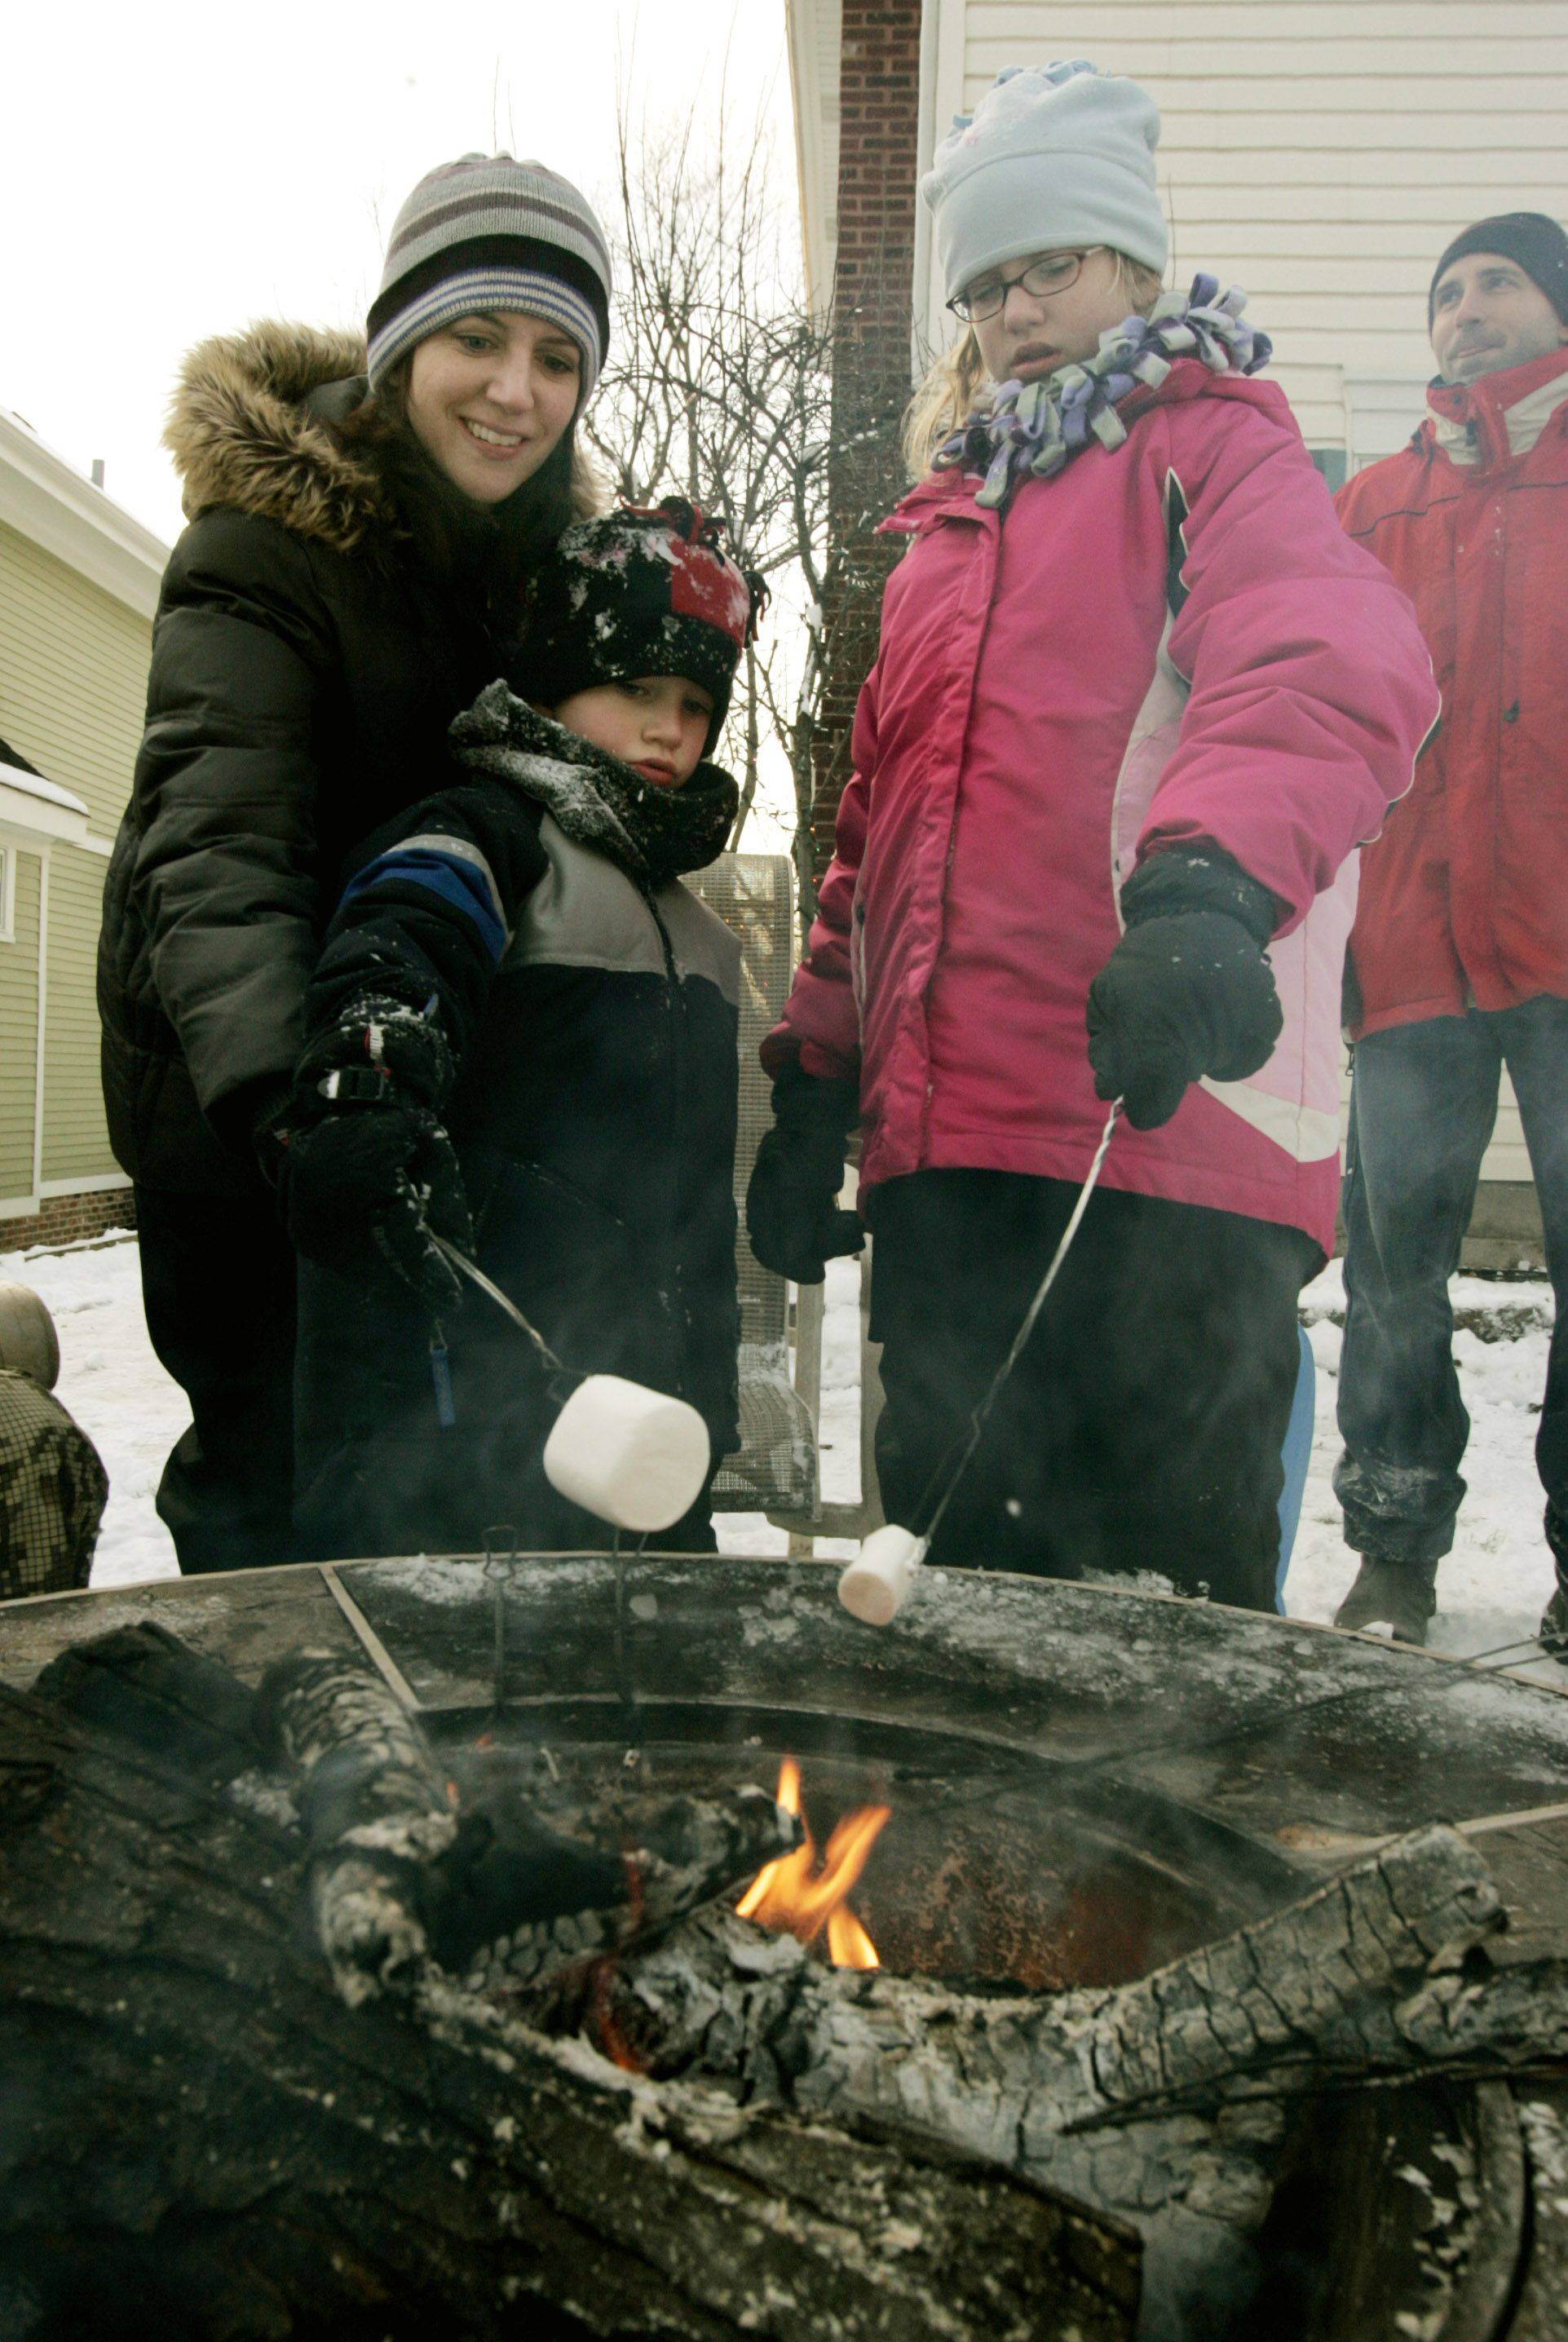 Anita Devalk of Itasca and her children Evan, 6, and Emma, 10, work on marshmallows during the Itasca Block Party Sunday along Maple Street in Itasca.